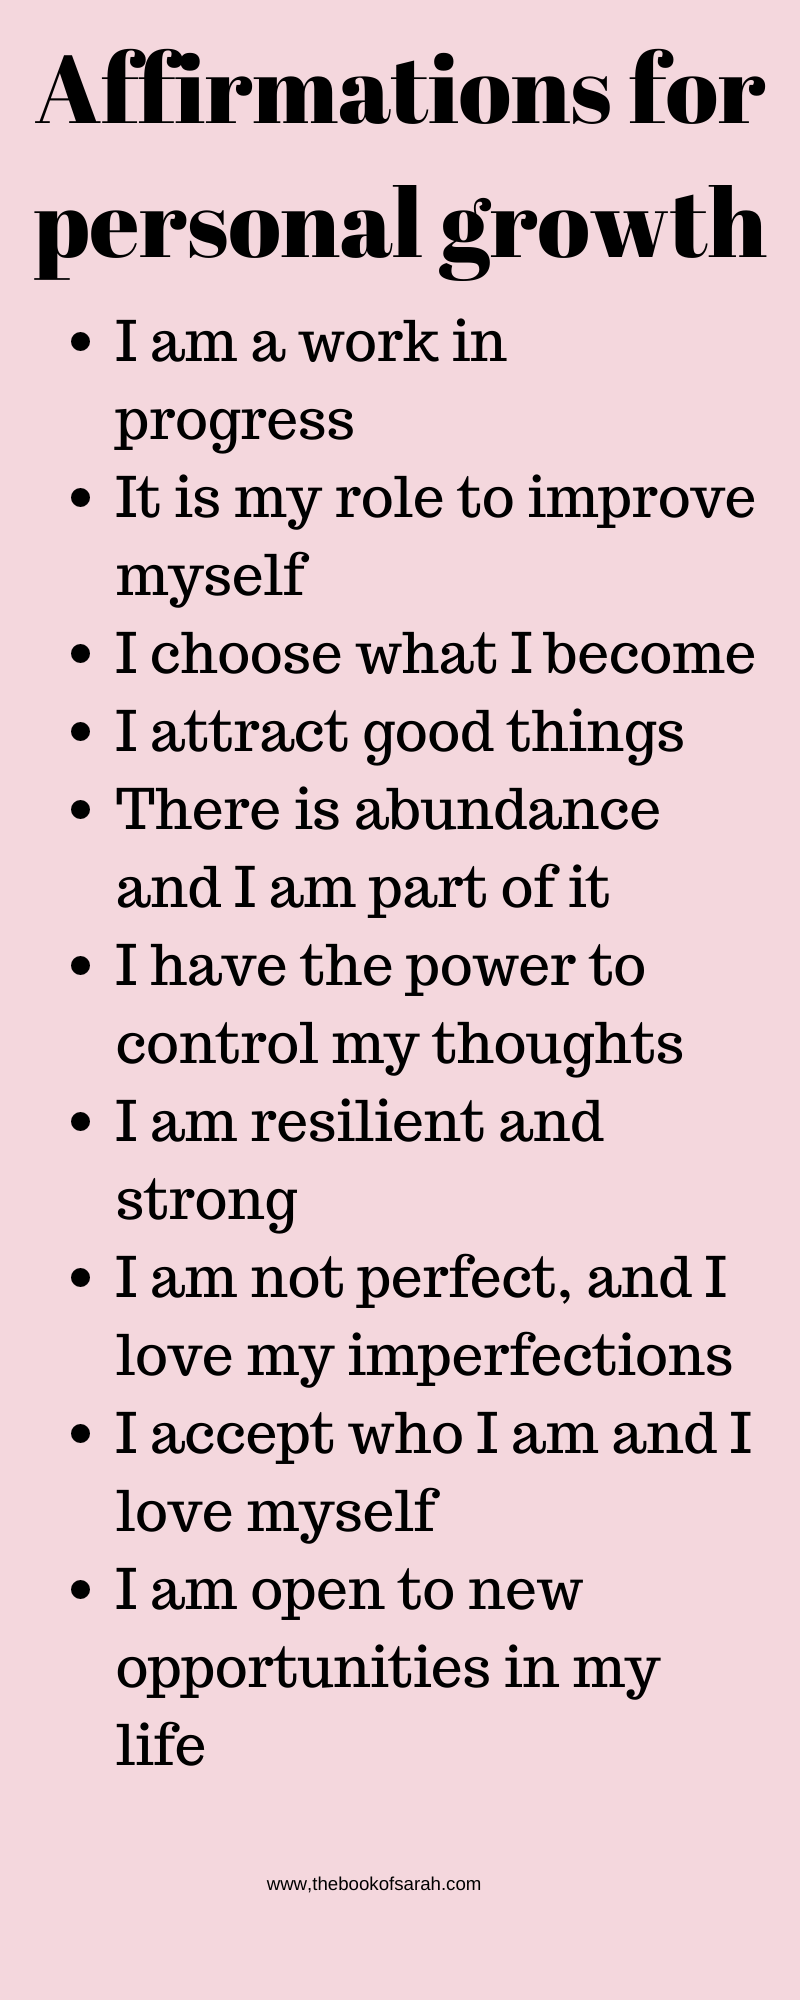 Daily affirmations to help you through tough times - The Book of Sarah